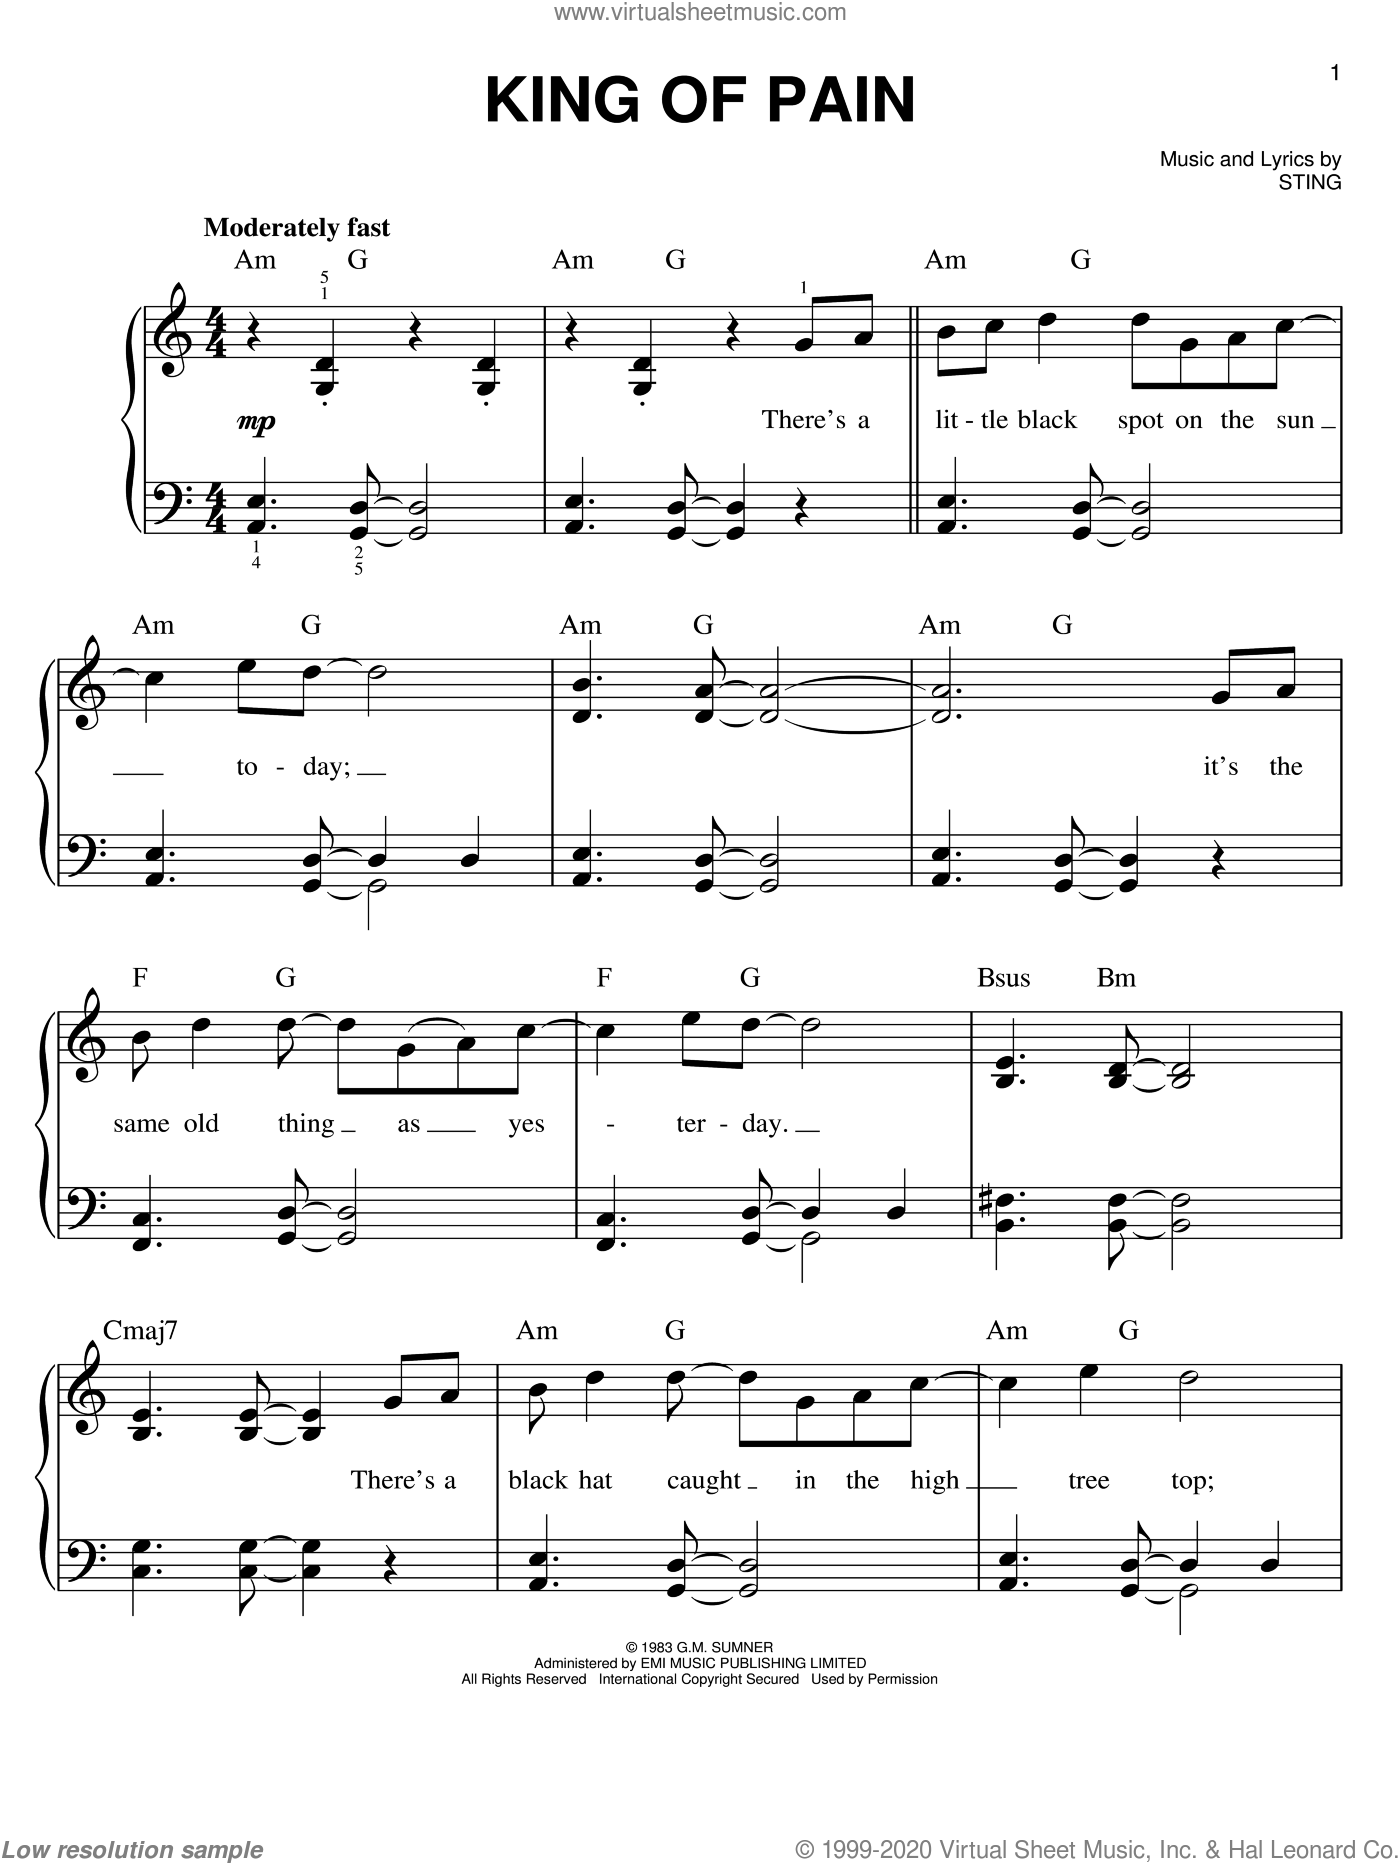 King Of Pain sheet music for piano solo by The Police and Sting, easy skill level